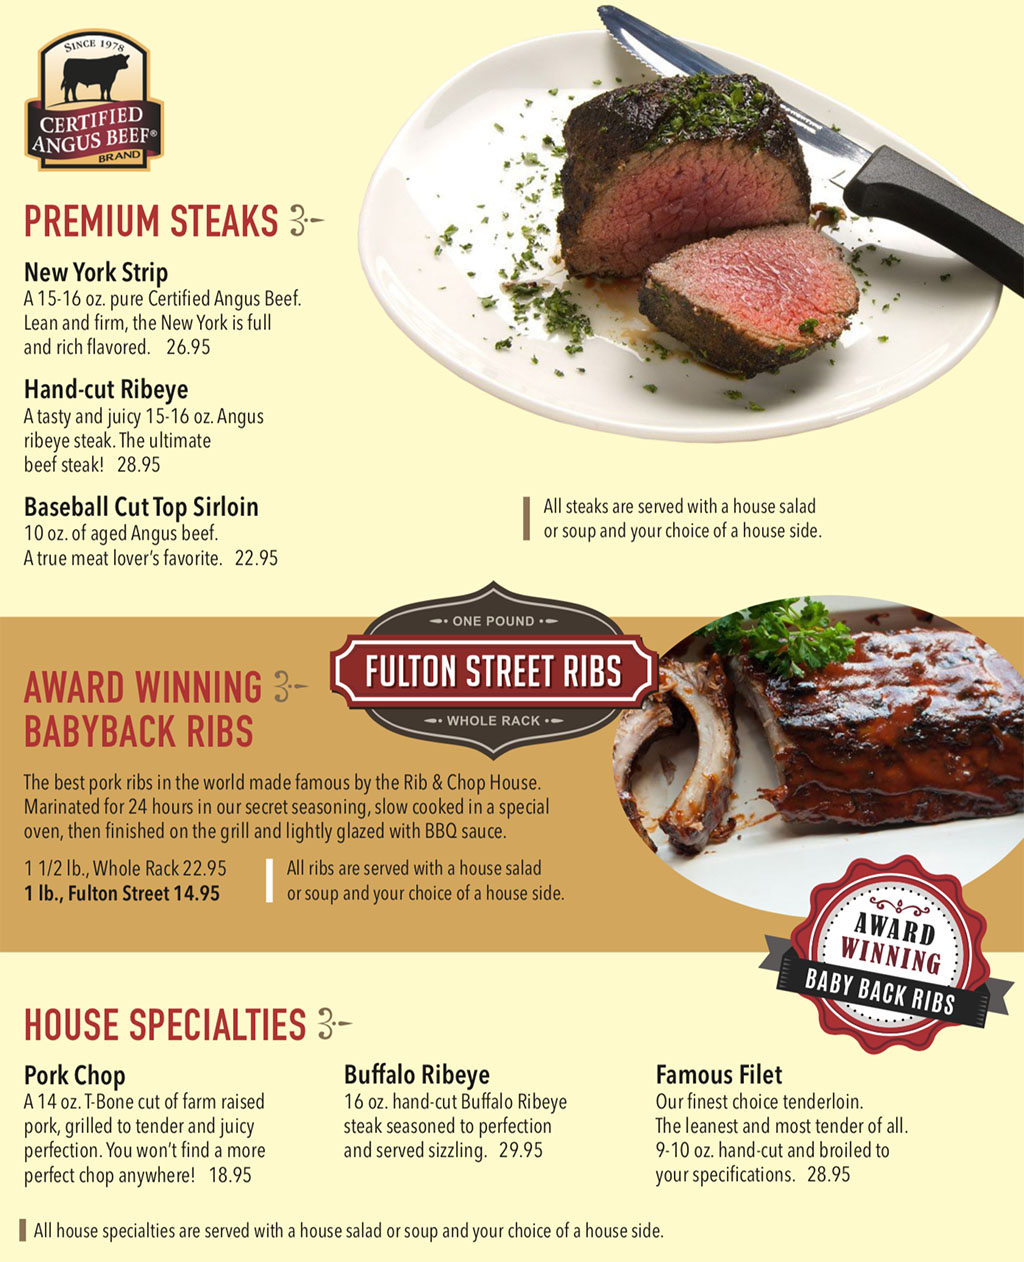 Rib And Chop House menu - steaks, ribs, specialties